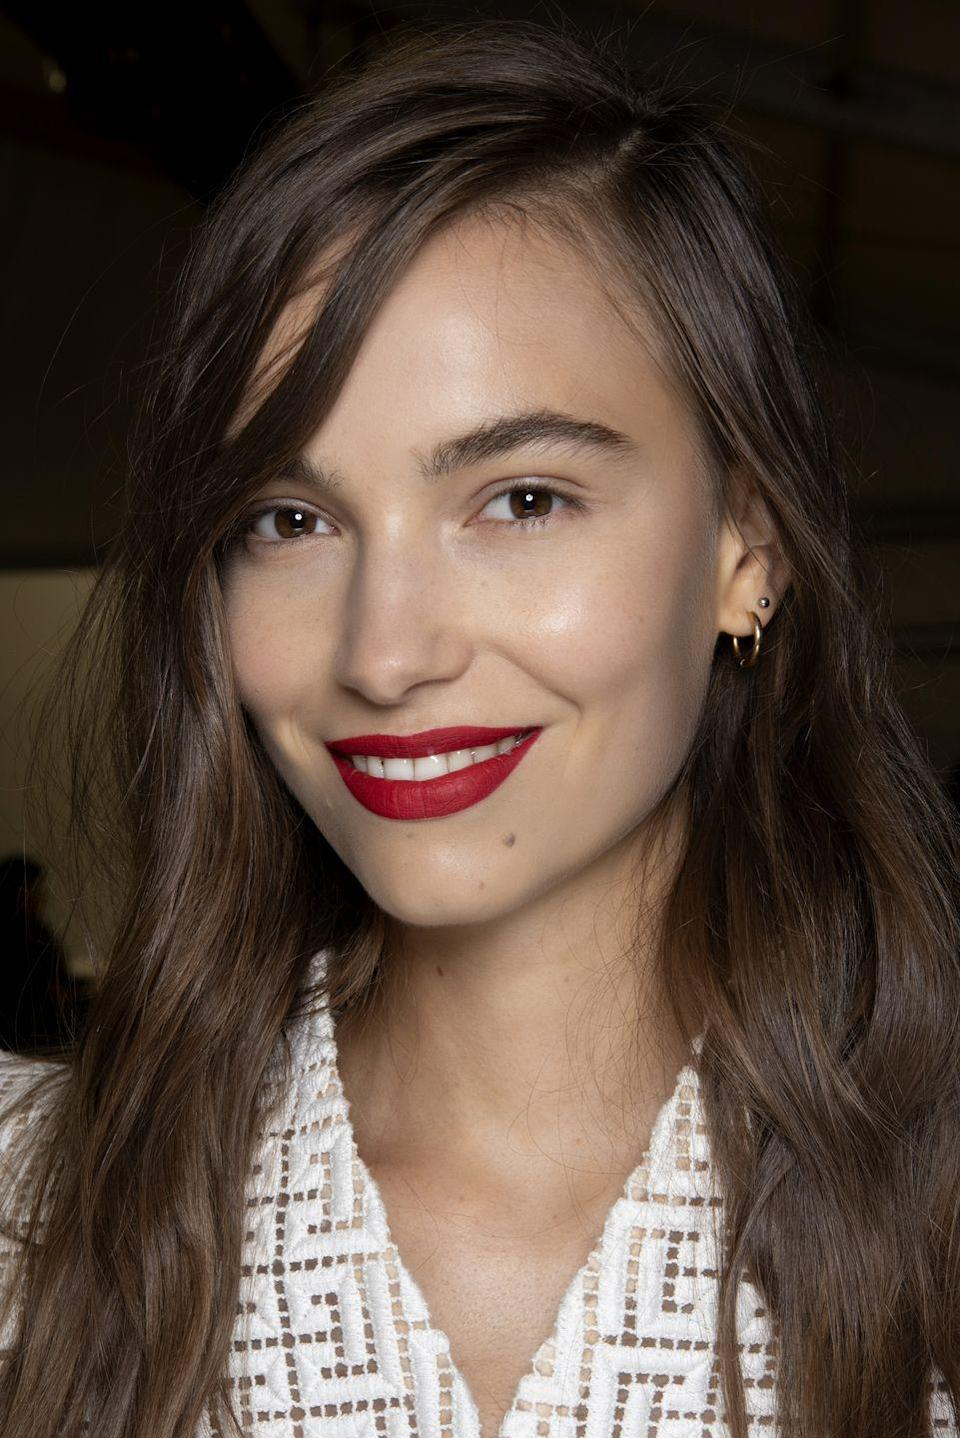 <p>One thing that warrants no Nineties nostalgia whatsoever is our complete lack of sunscreen know-how back then. Thanks to 21st-century science, we can swap out sun damage and still keep our Vitamin D topped up with techy new SPF formulations.</p>